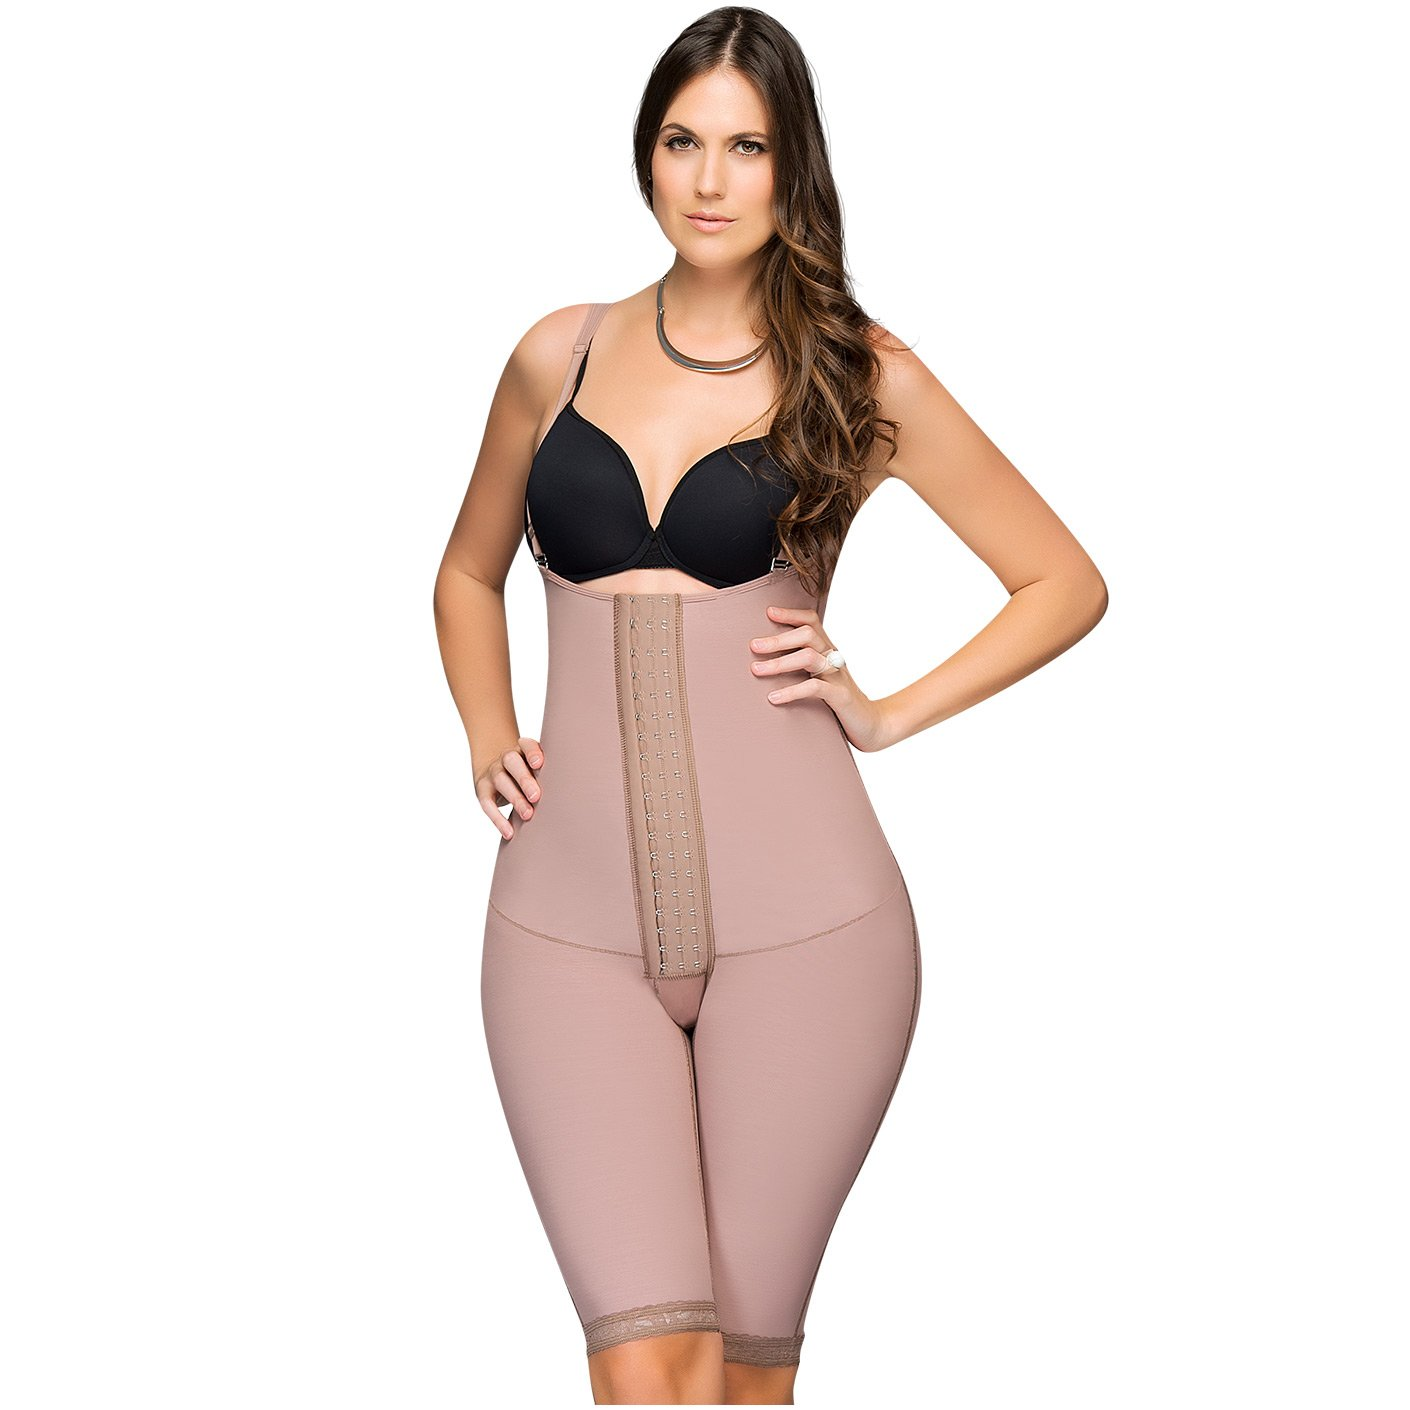 Fajas DPrada 11175 Braless Shapewear Post Surgery Compression Garment Girdle - Cocoa-Optic - M at Amazon Womens Clothing store: